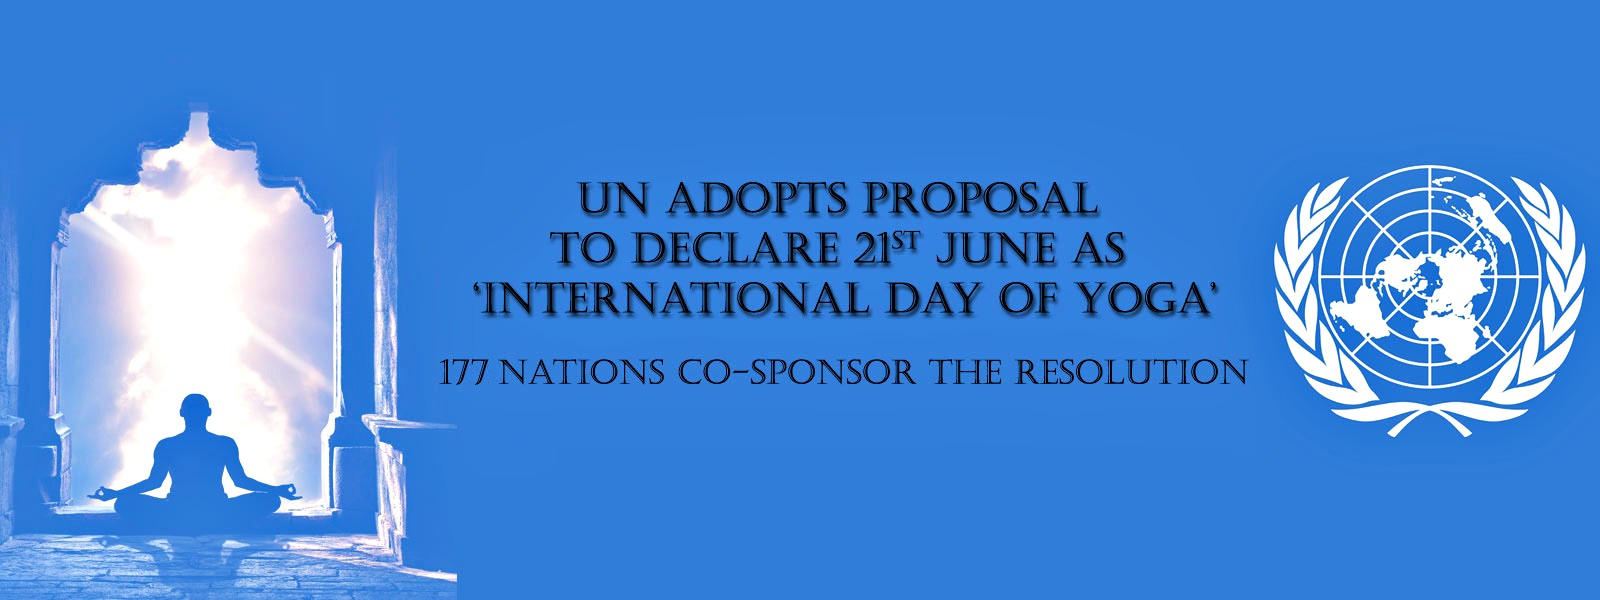 yoga is official united nations adopts international yoga day yoga is official united nations adopts international yoga day